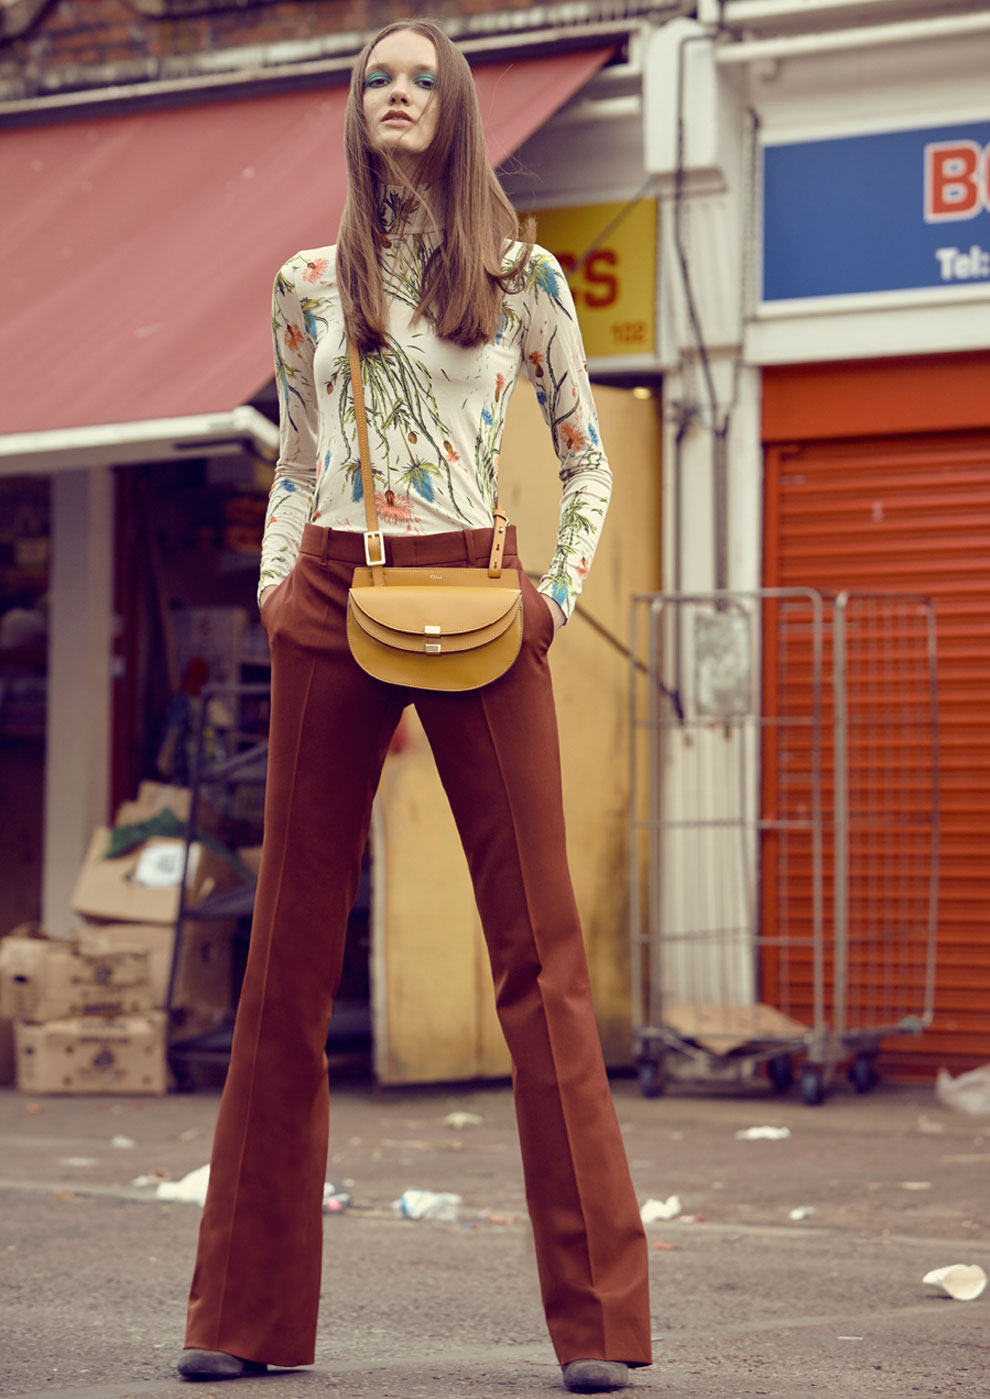 WW03Editorial_PlaidsAndTweed_London-Market7.jpg